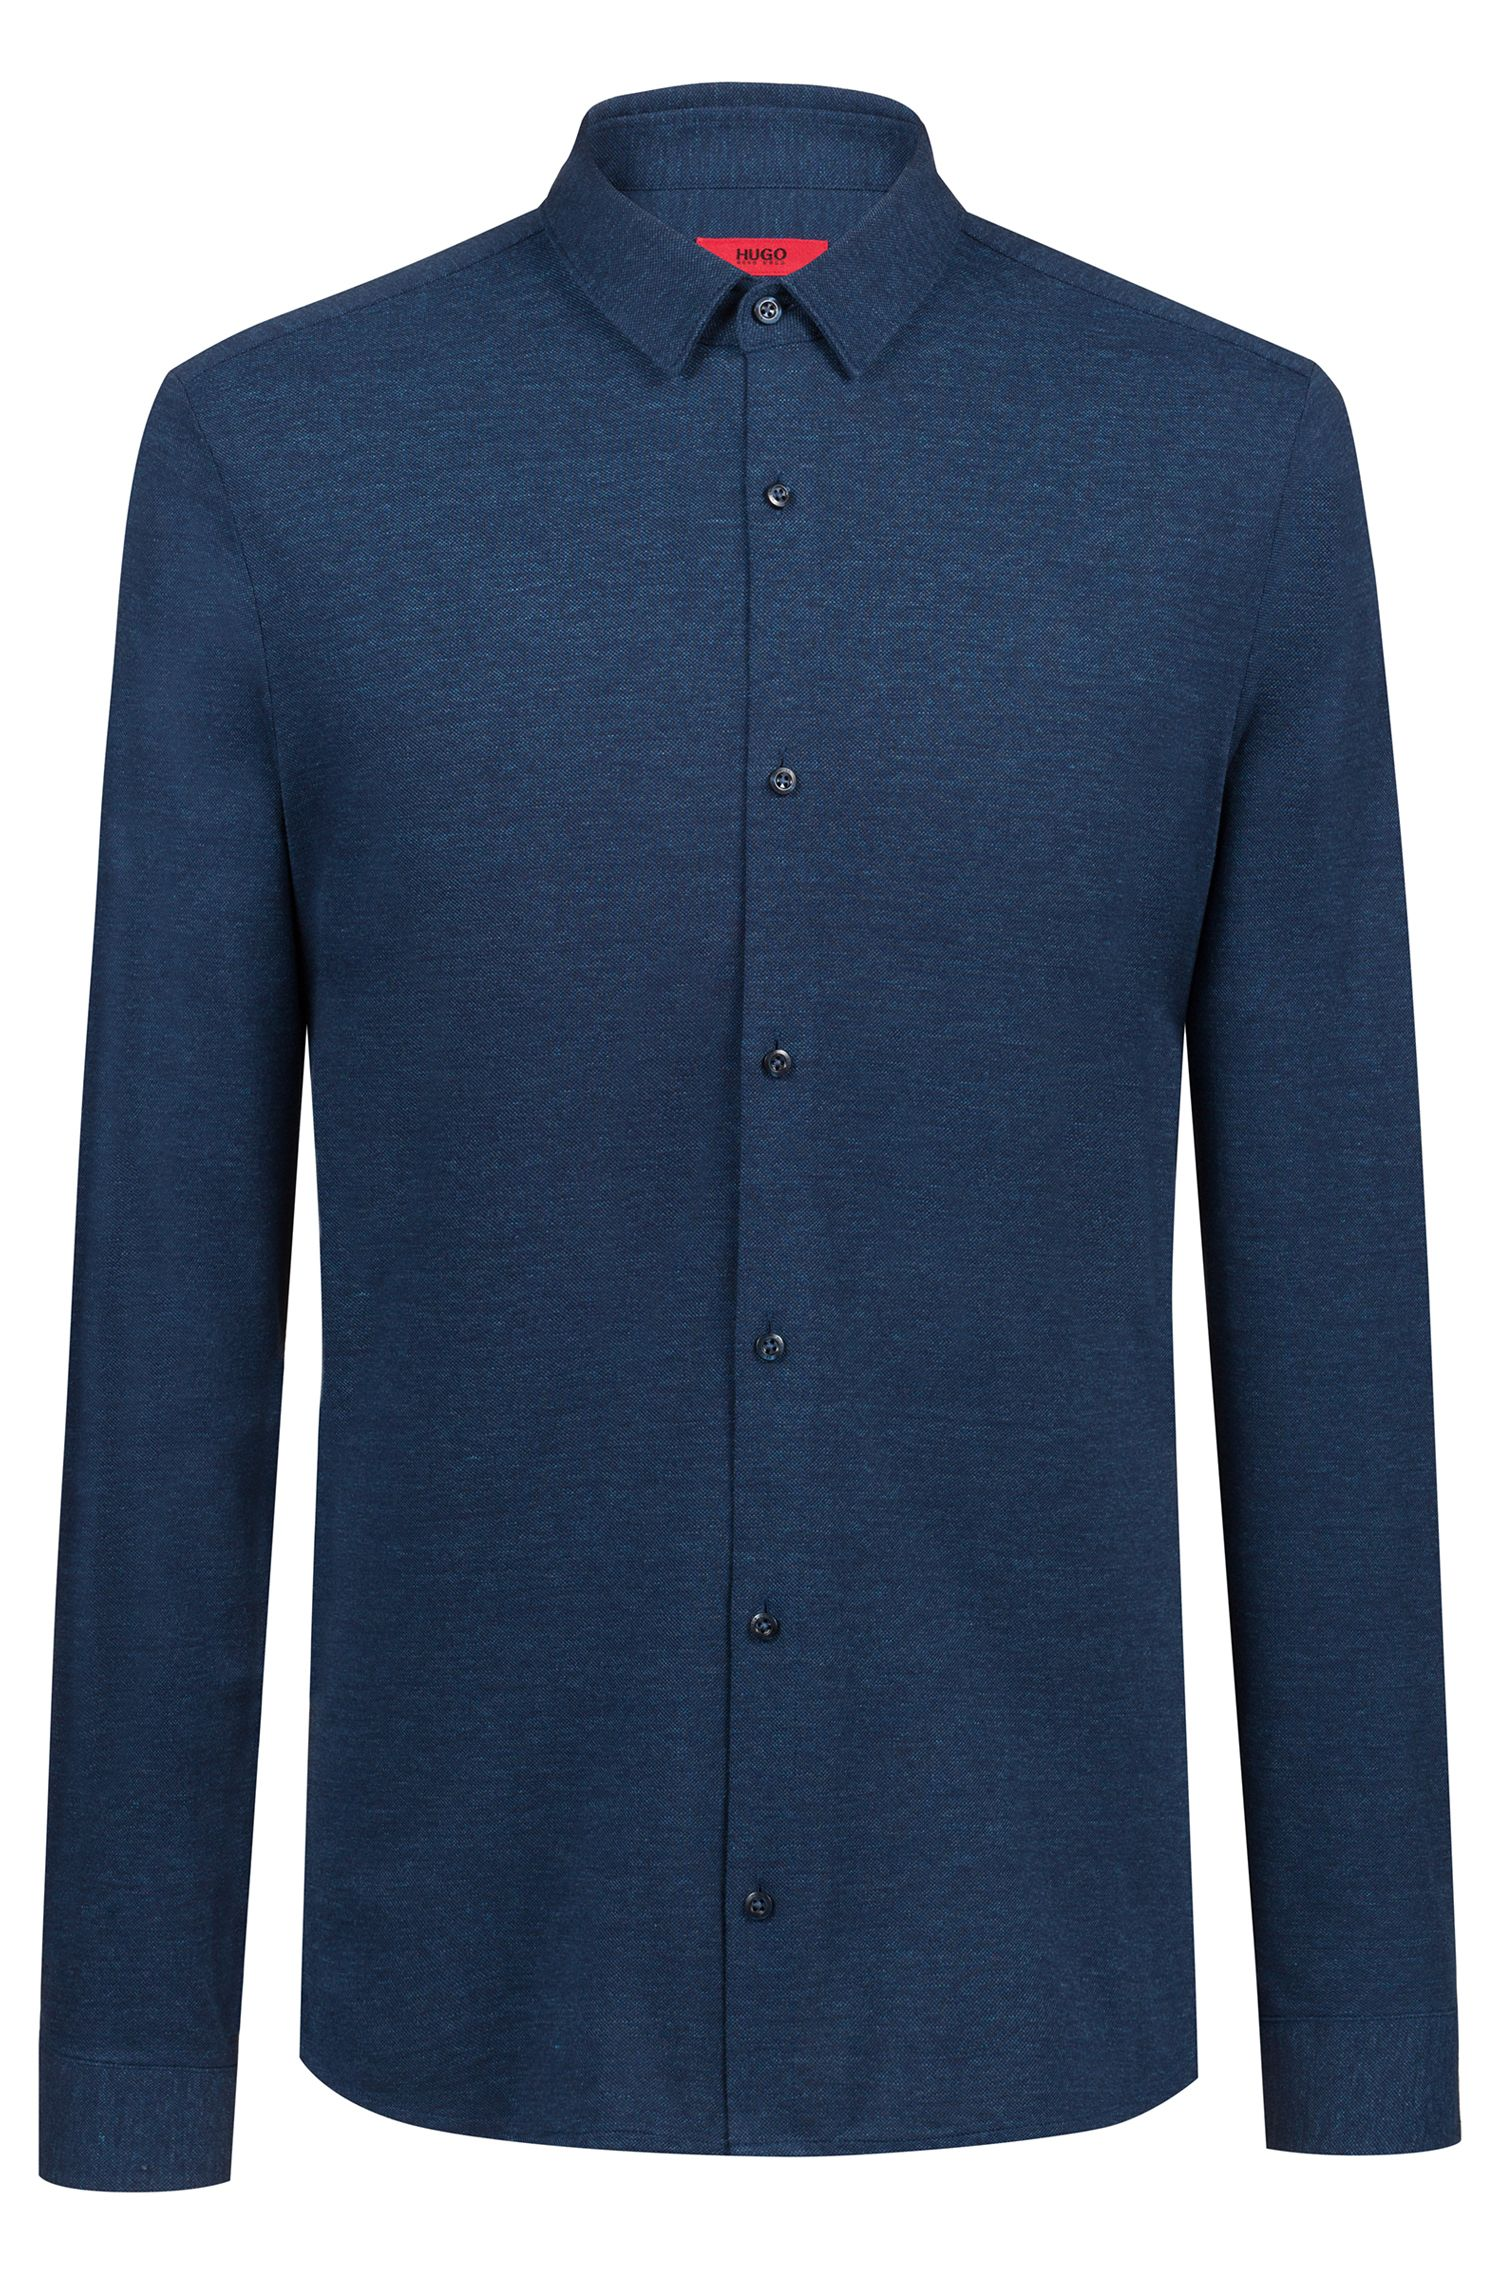 Extra-slim-fit shirt in melange cotton jersey, Dark Blue